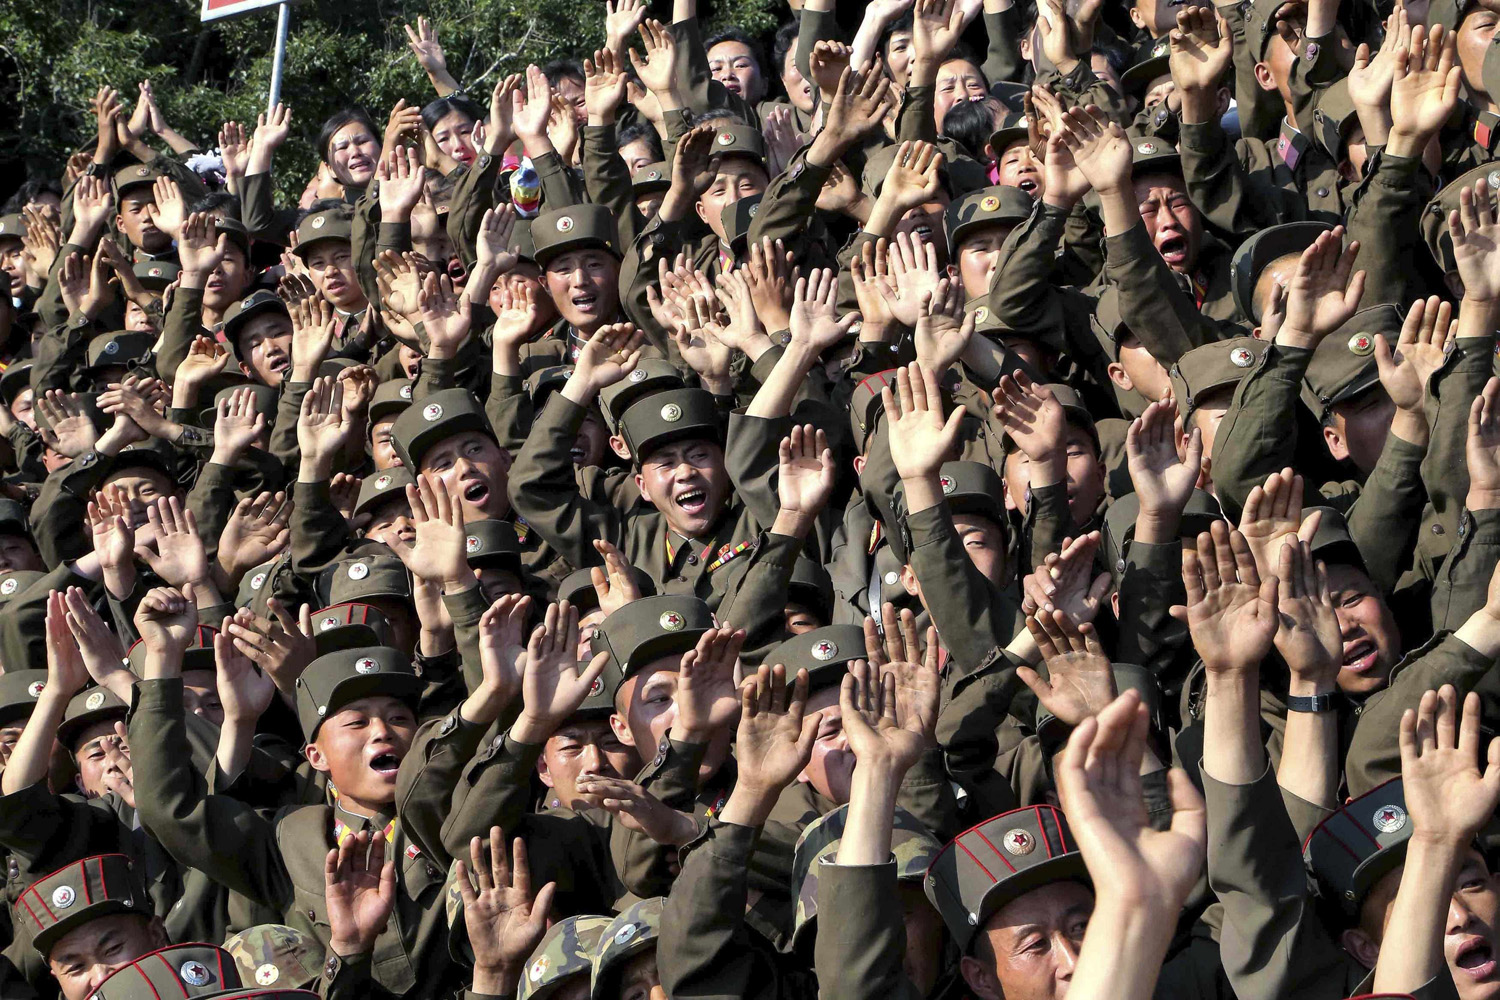 Soldiers wave during a visit by North Korean leader Kim Jong Un to inspect the defence detachment on Ung Islet, which is defending an outpost in the East Sea of Korea, in this undated photo released by North Korea's Korean Central News Agency (KCNA) in Pyongyang July 7, 2014.